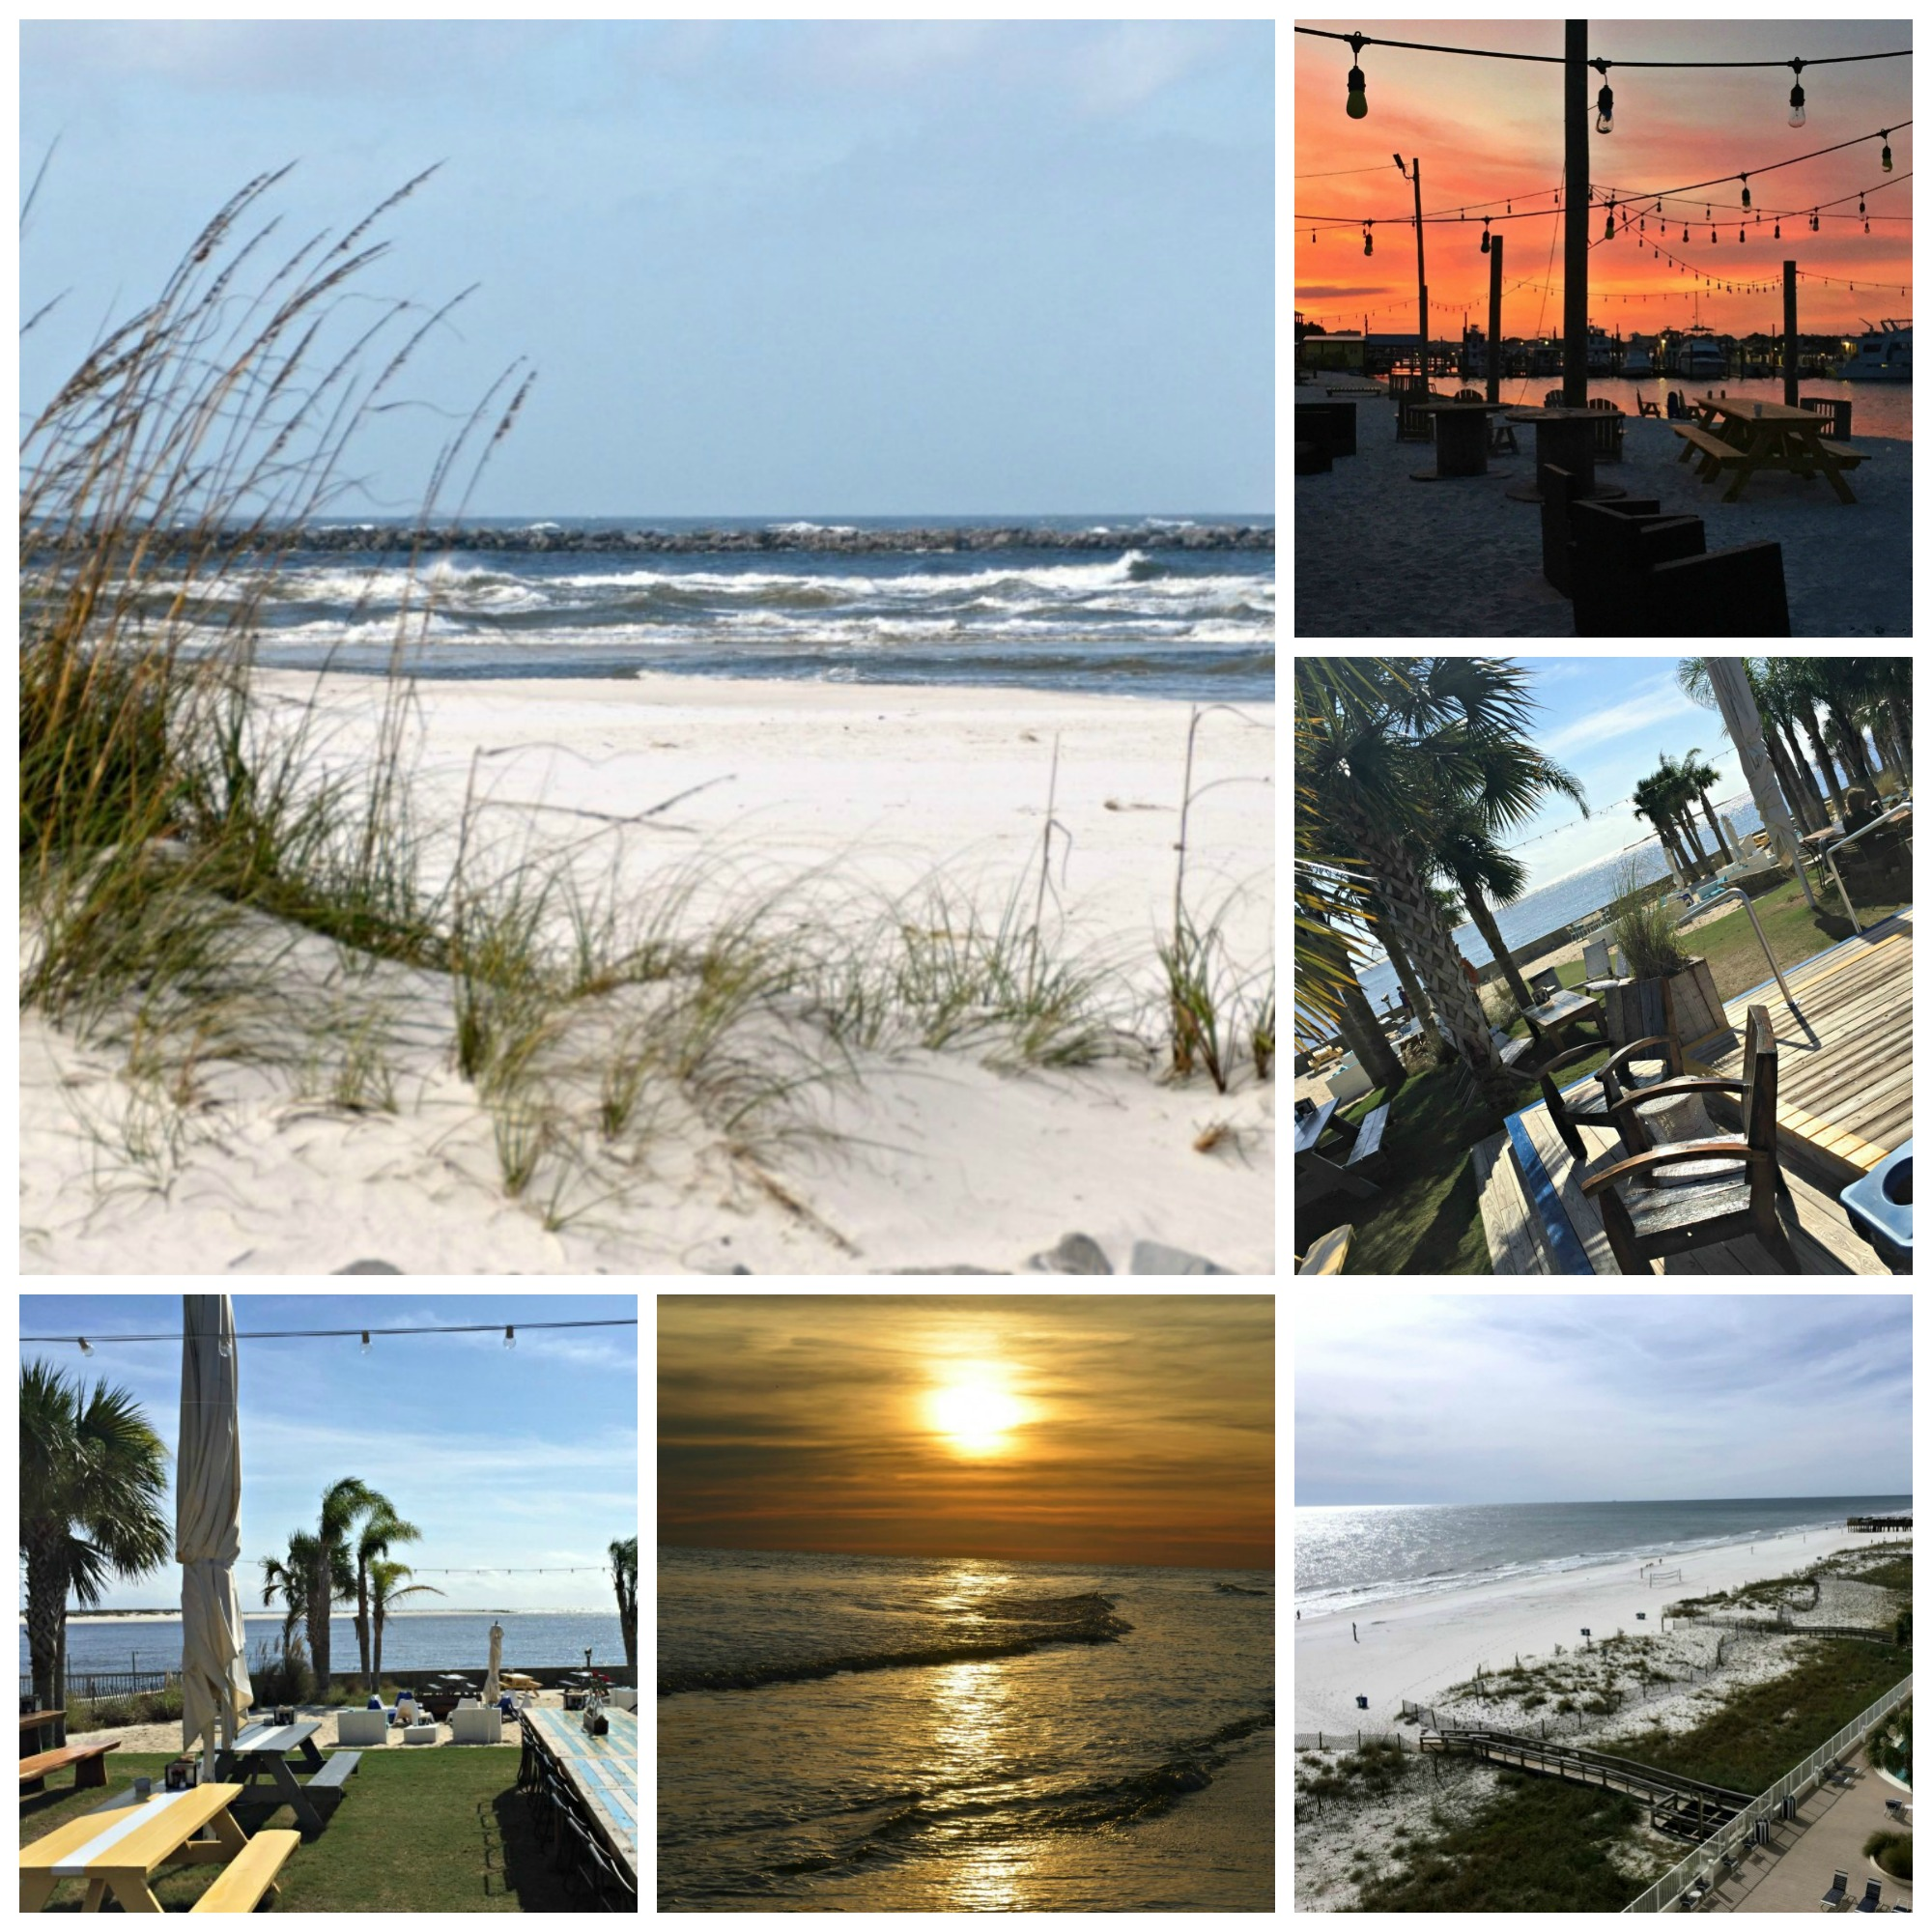 5 Reasons Gulf Shores should be your next Vacation Destination